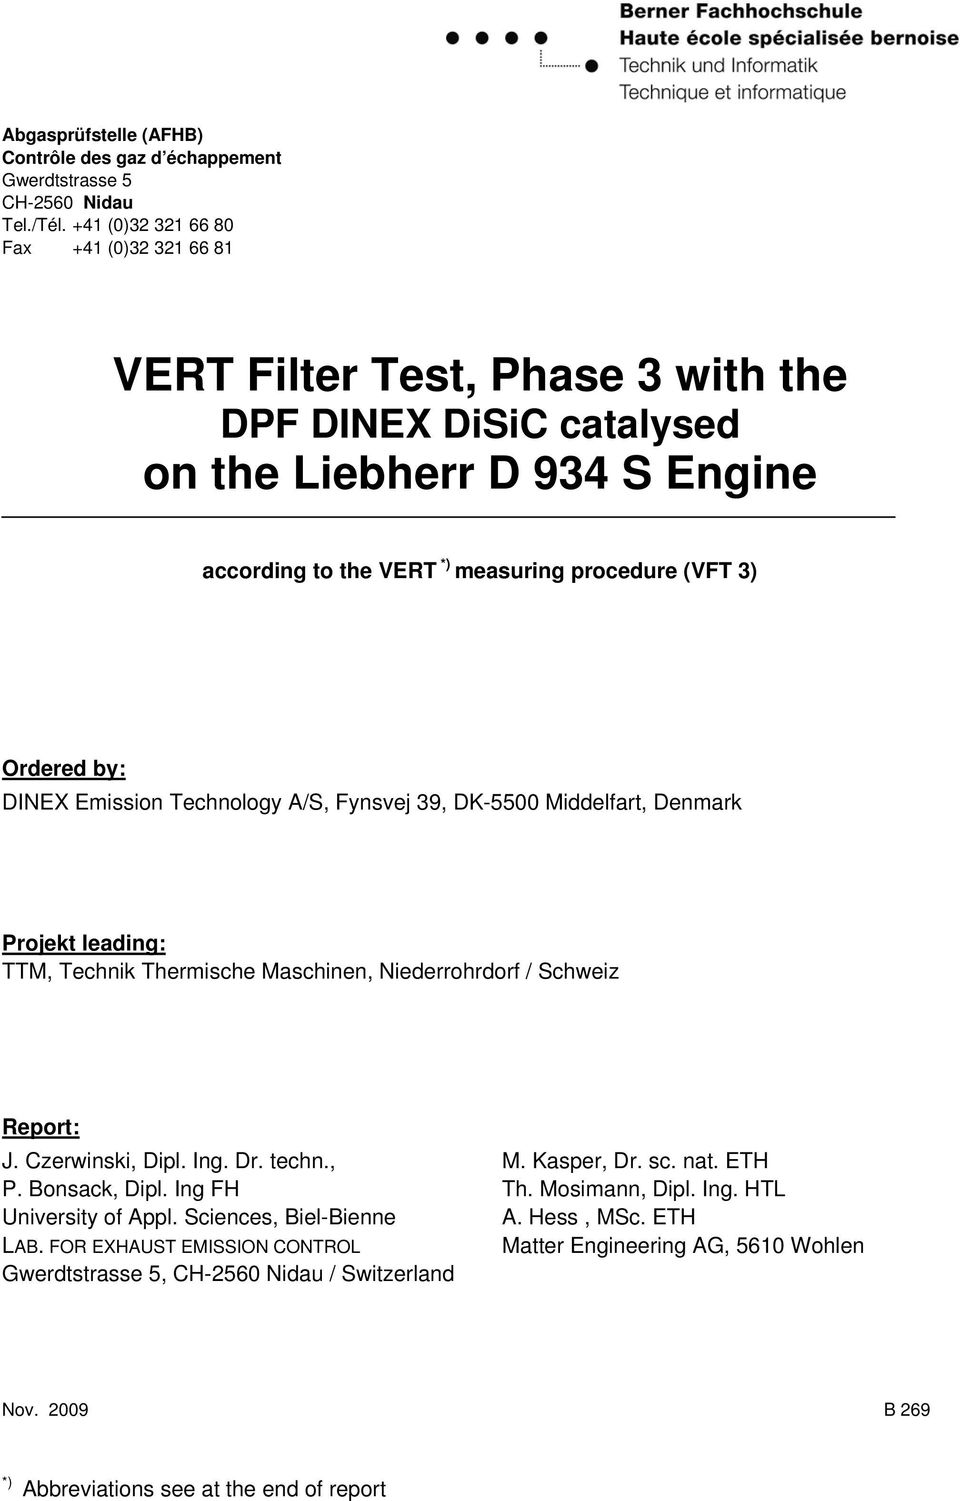 VERT Filter Test, Phase 3 with the DPF DINEX DiSiC catalysed on the